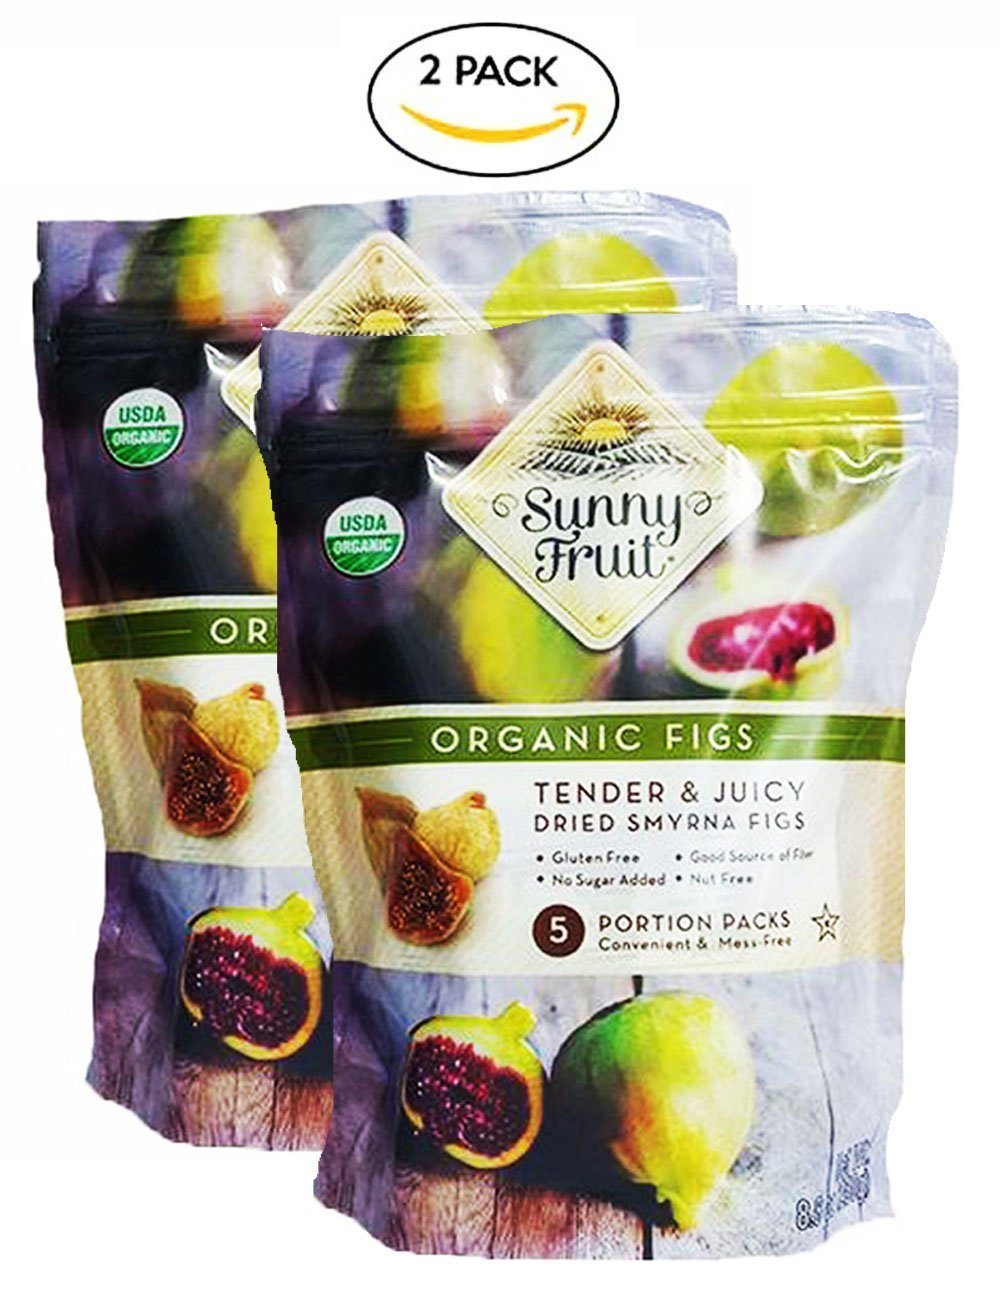 Sunny Fruit Organic Figs, Tender & Juicy Dried Smyrna Figs, 2Packs